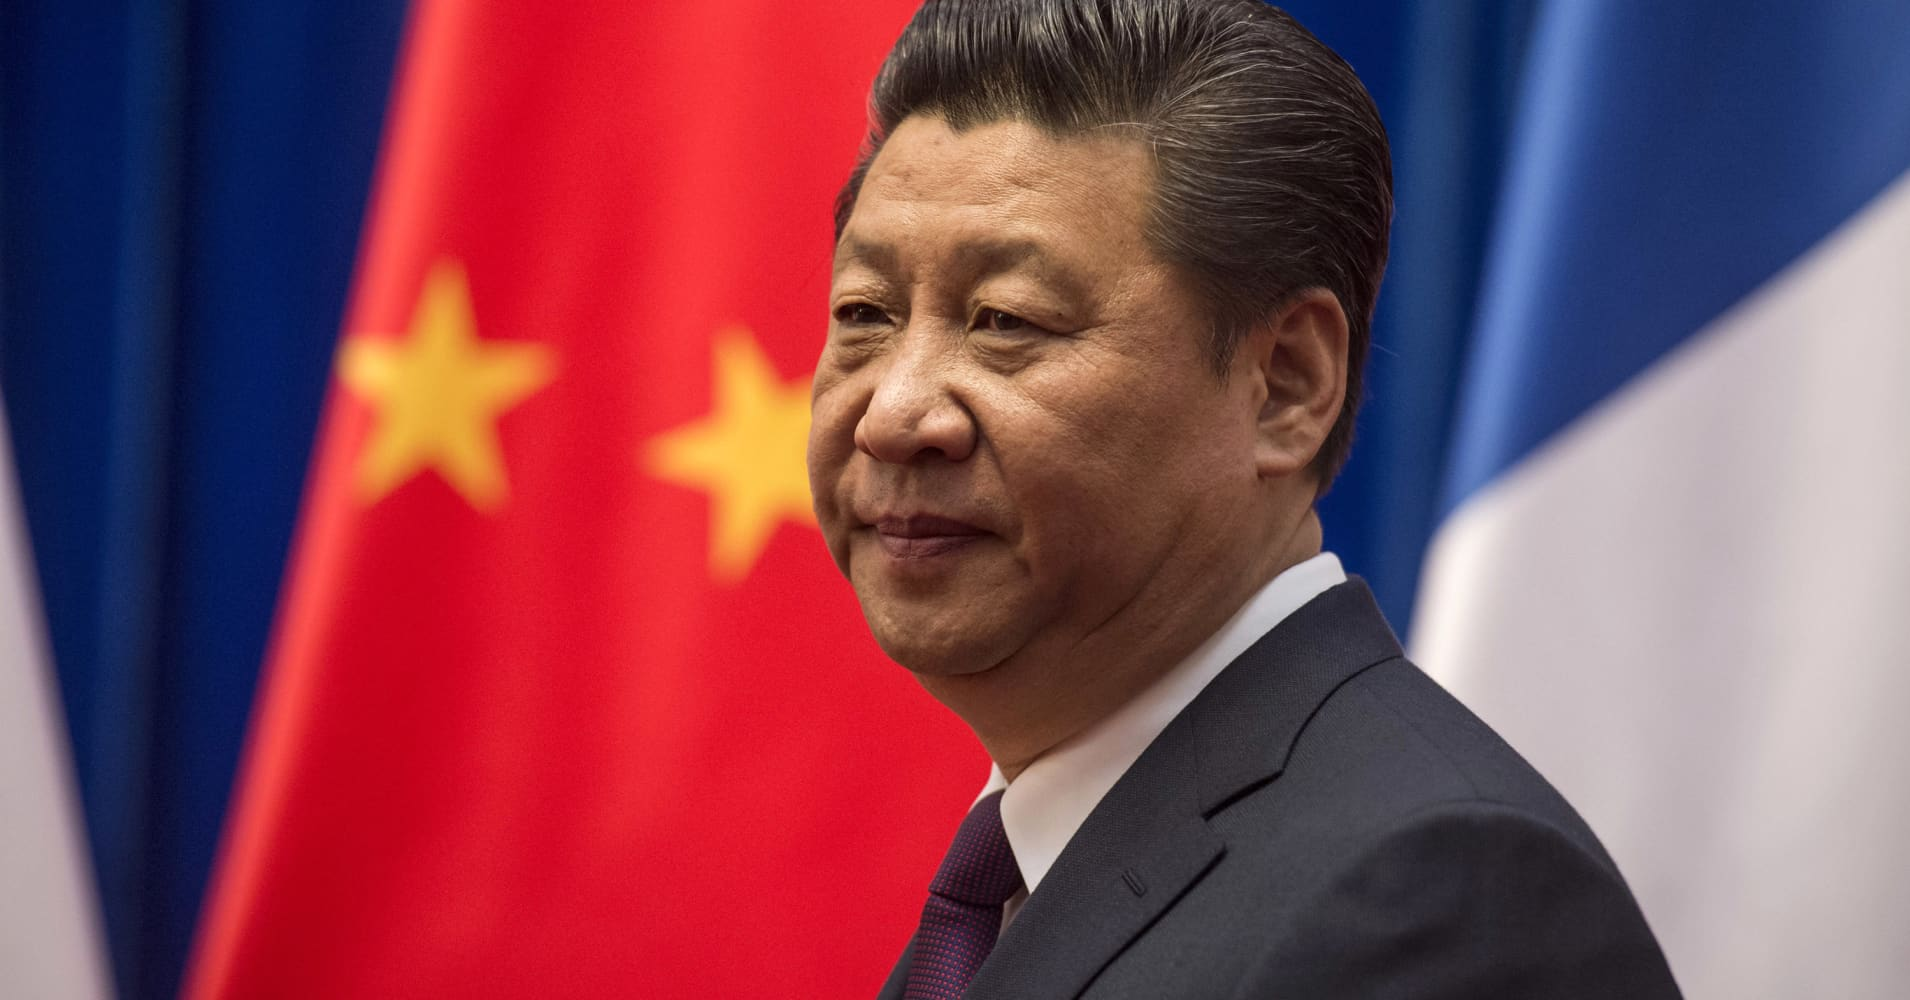 63af23d2d4af9 China s Xi offers populist message in New Year s Eve address (16.99 17)